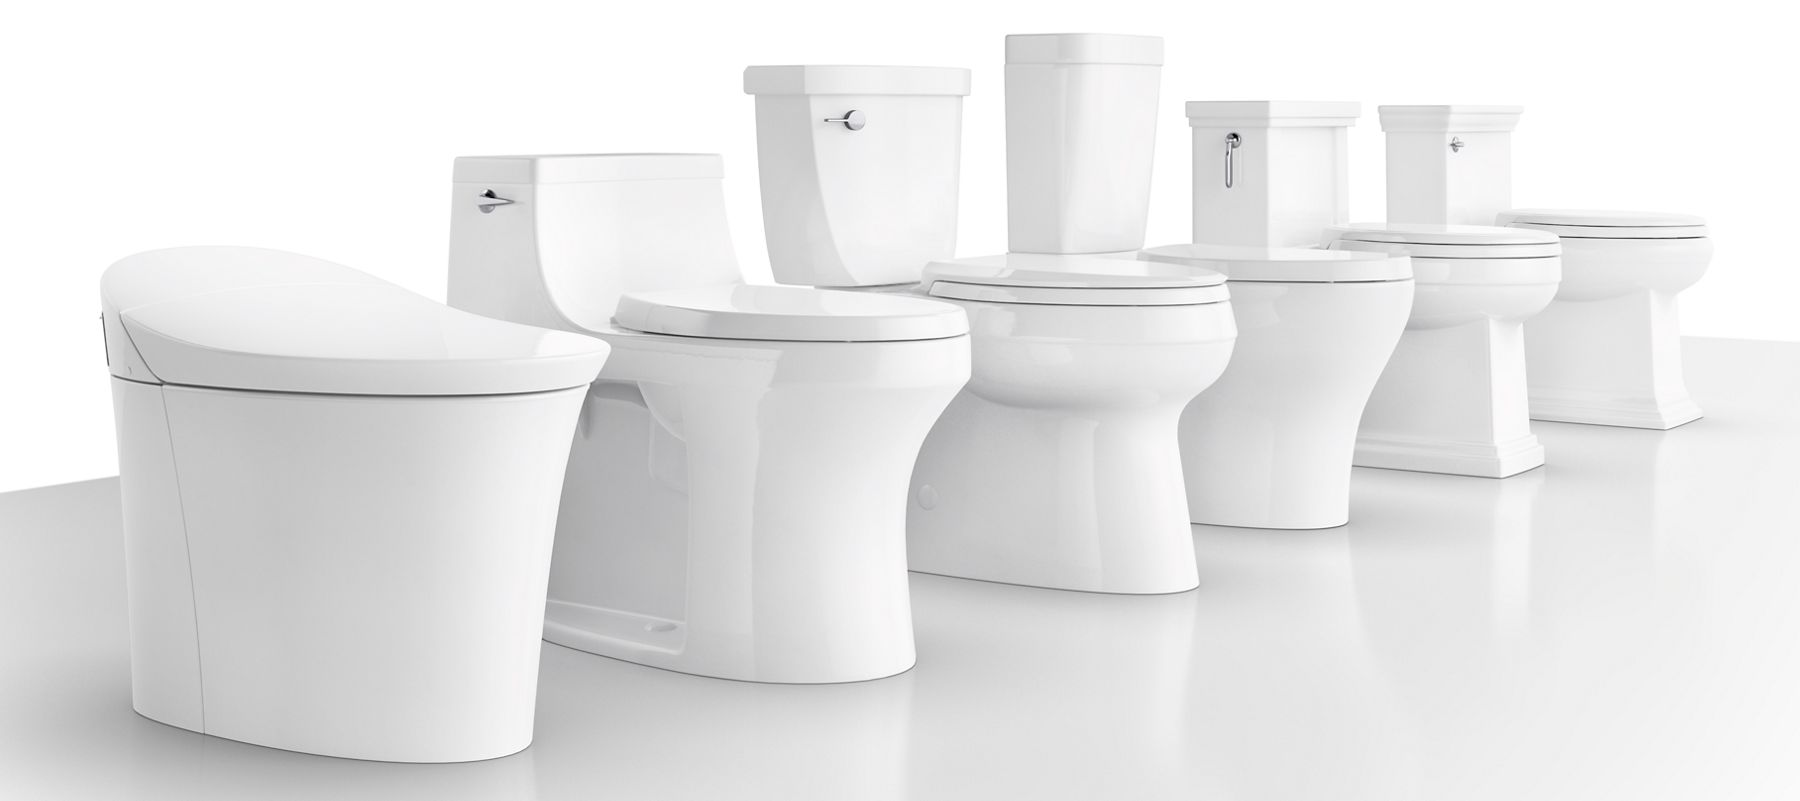 Magnificent Kohler Toilet Satisfaction Caraccident5 Cool Chair Designs And Ideas Caraccident5Info